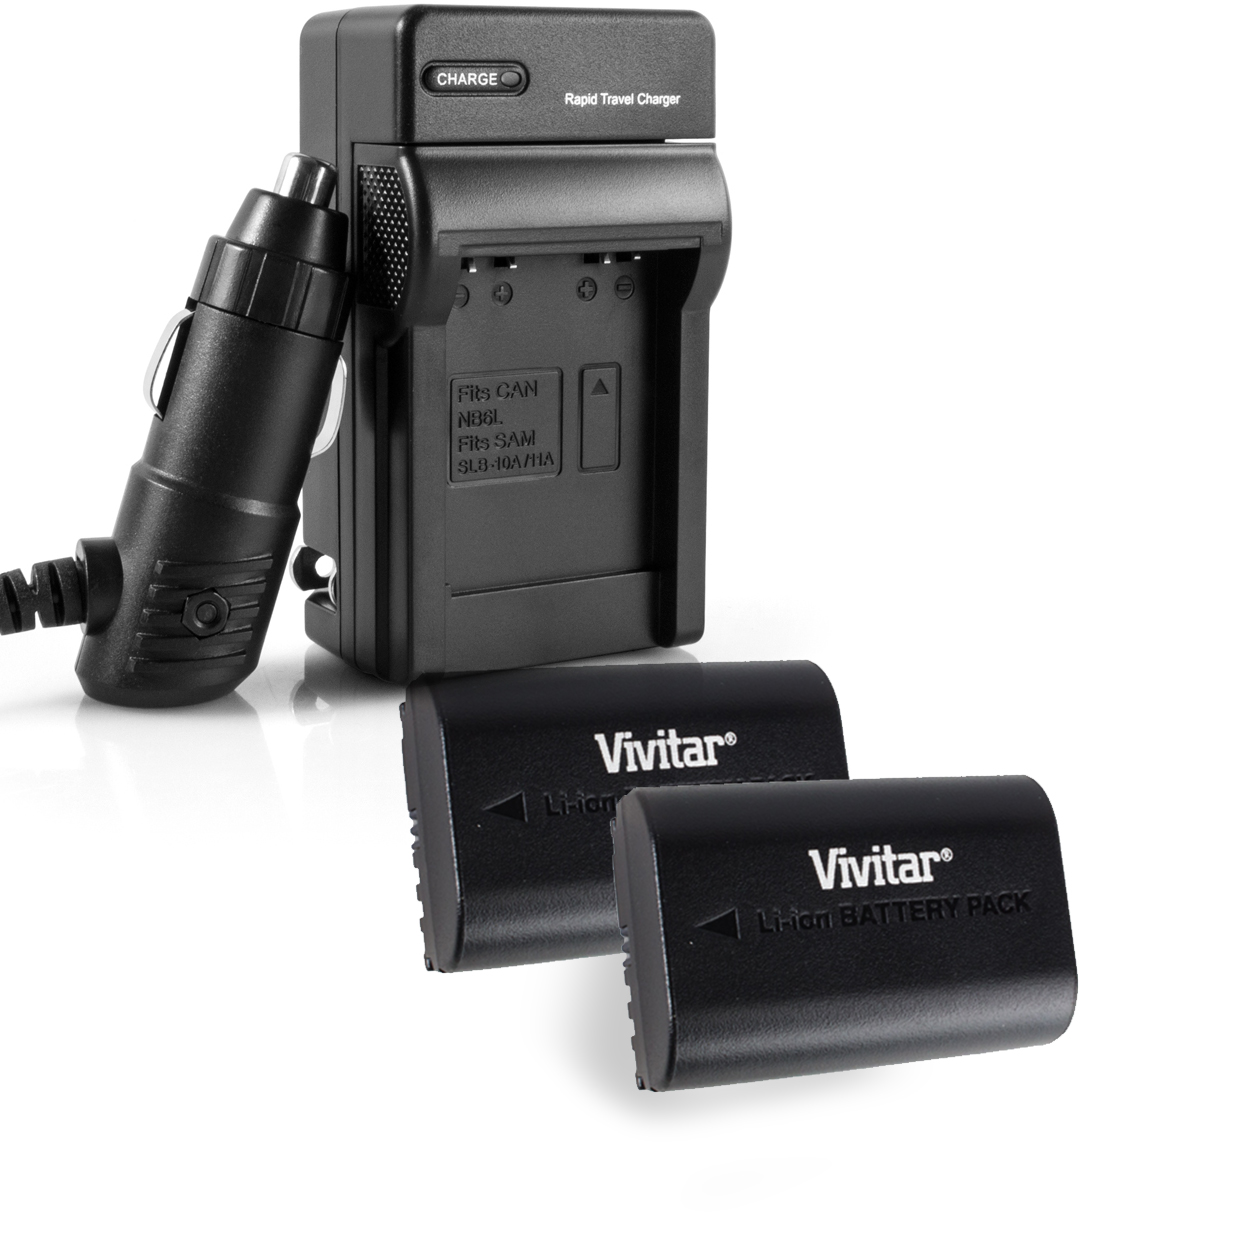 Vivitar 2 Pack Battery and Charger kit  - Vivitar VIV-CB-E6 - BATTERY FOR CANON LP-E6 (qc-207)